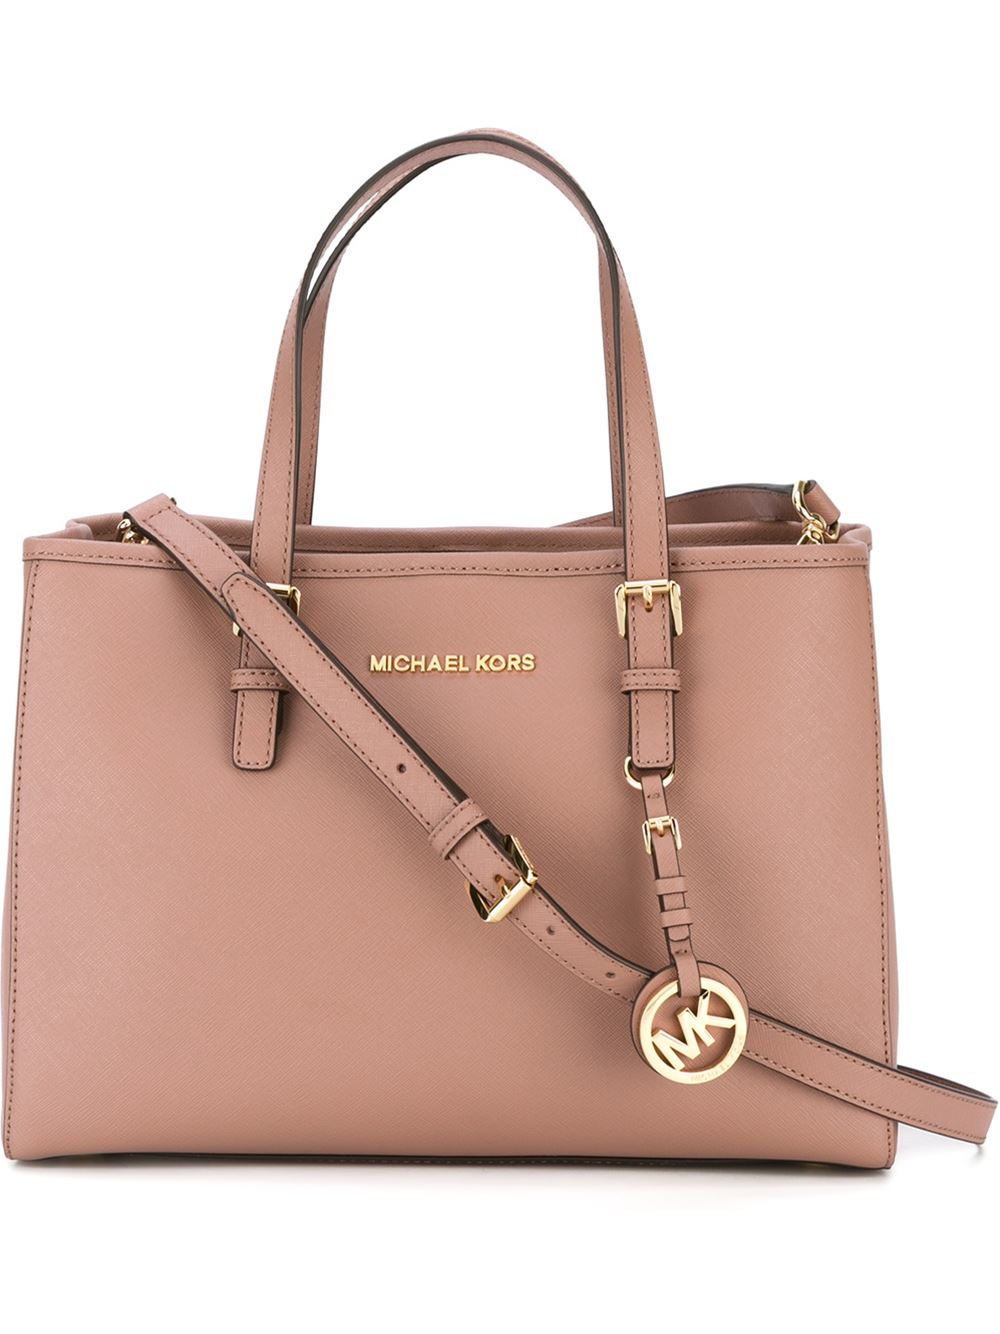 MICHAEL Michael Kors Jet Set Travel Medium Tote Bag in Pink - Lyst 9395a3552edc